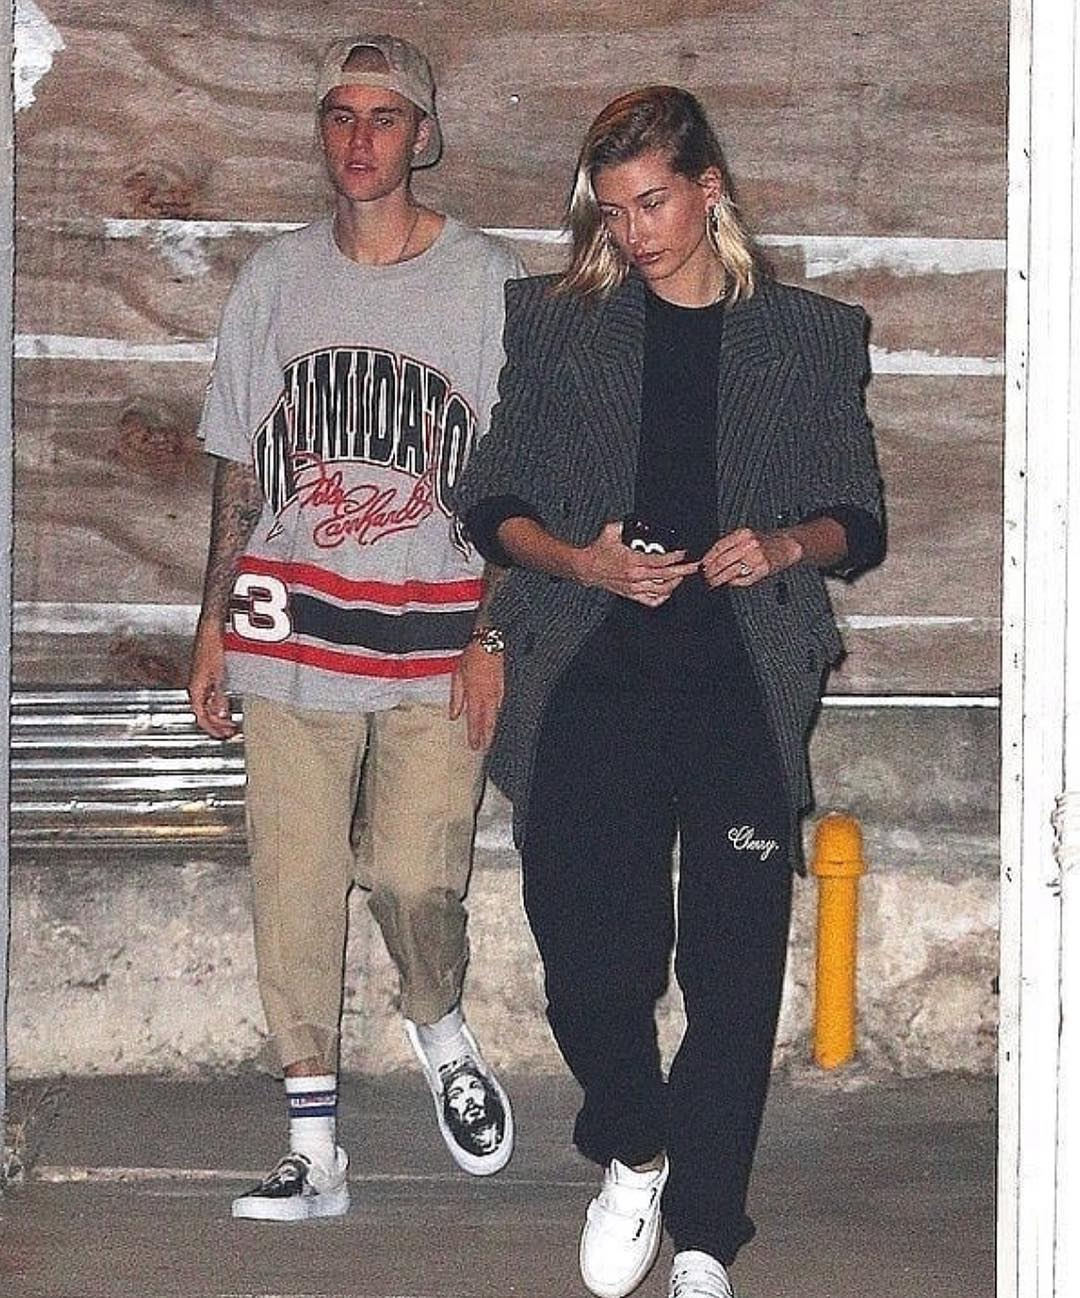 SPOTTED: Justin Bieber and Hailey Baldwin at the Saban Theater in Los Angeles